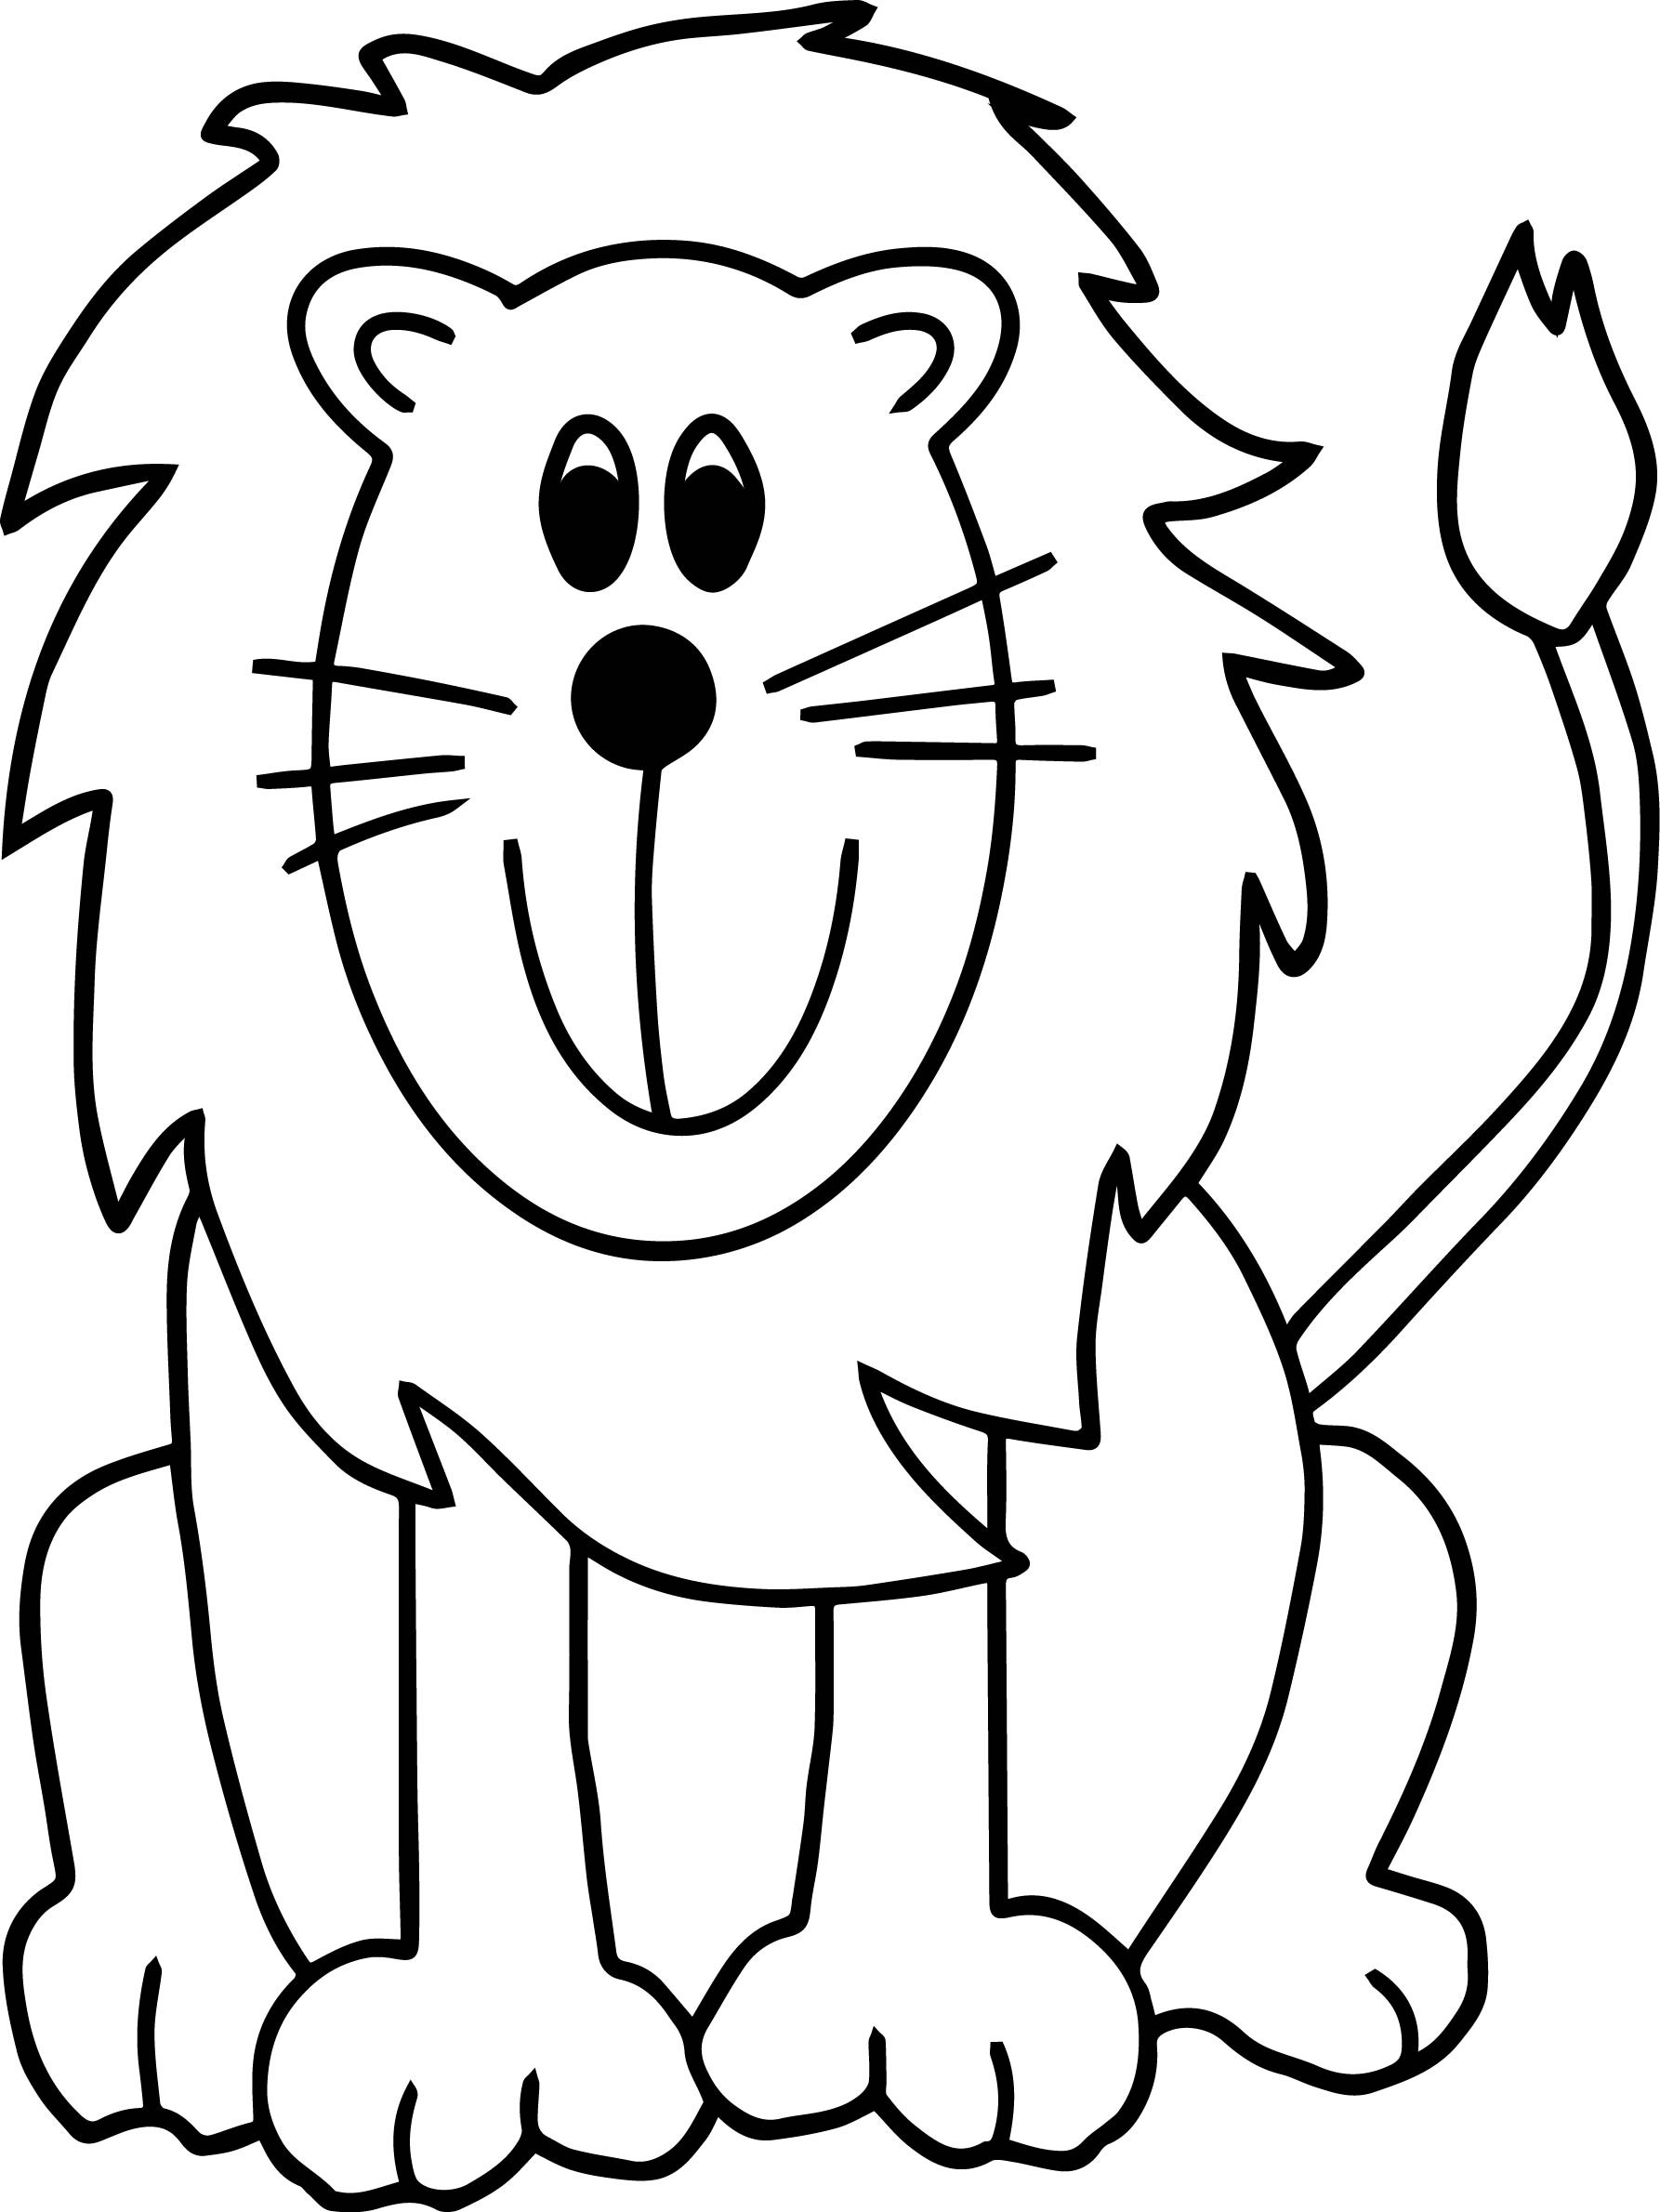 zoo coloring page zoo coloring pages free download on clipartmag page coloring zoo